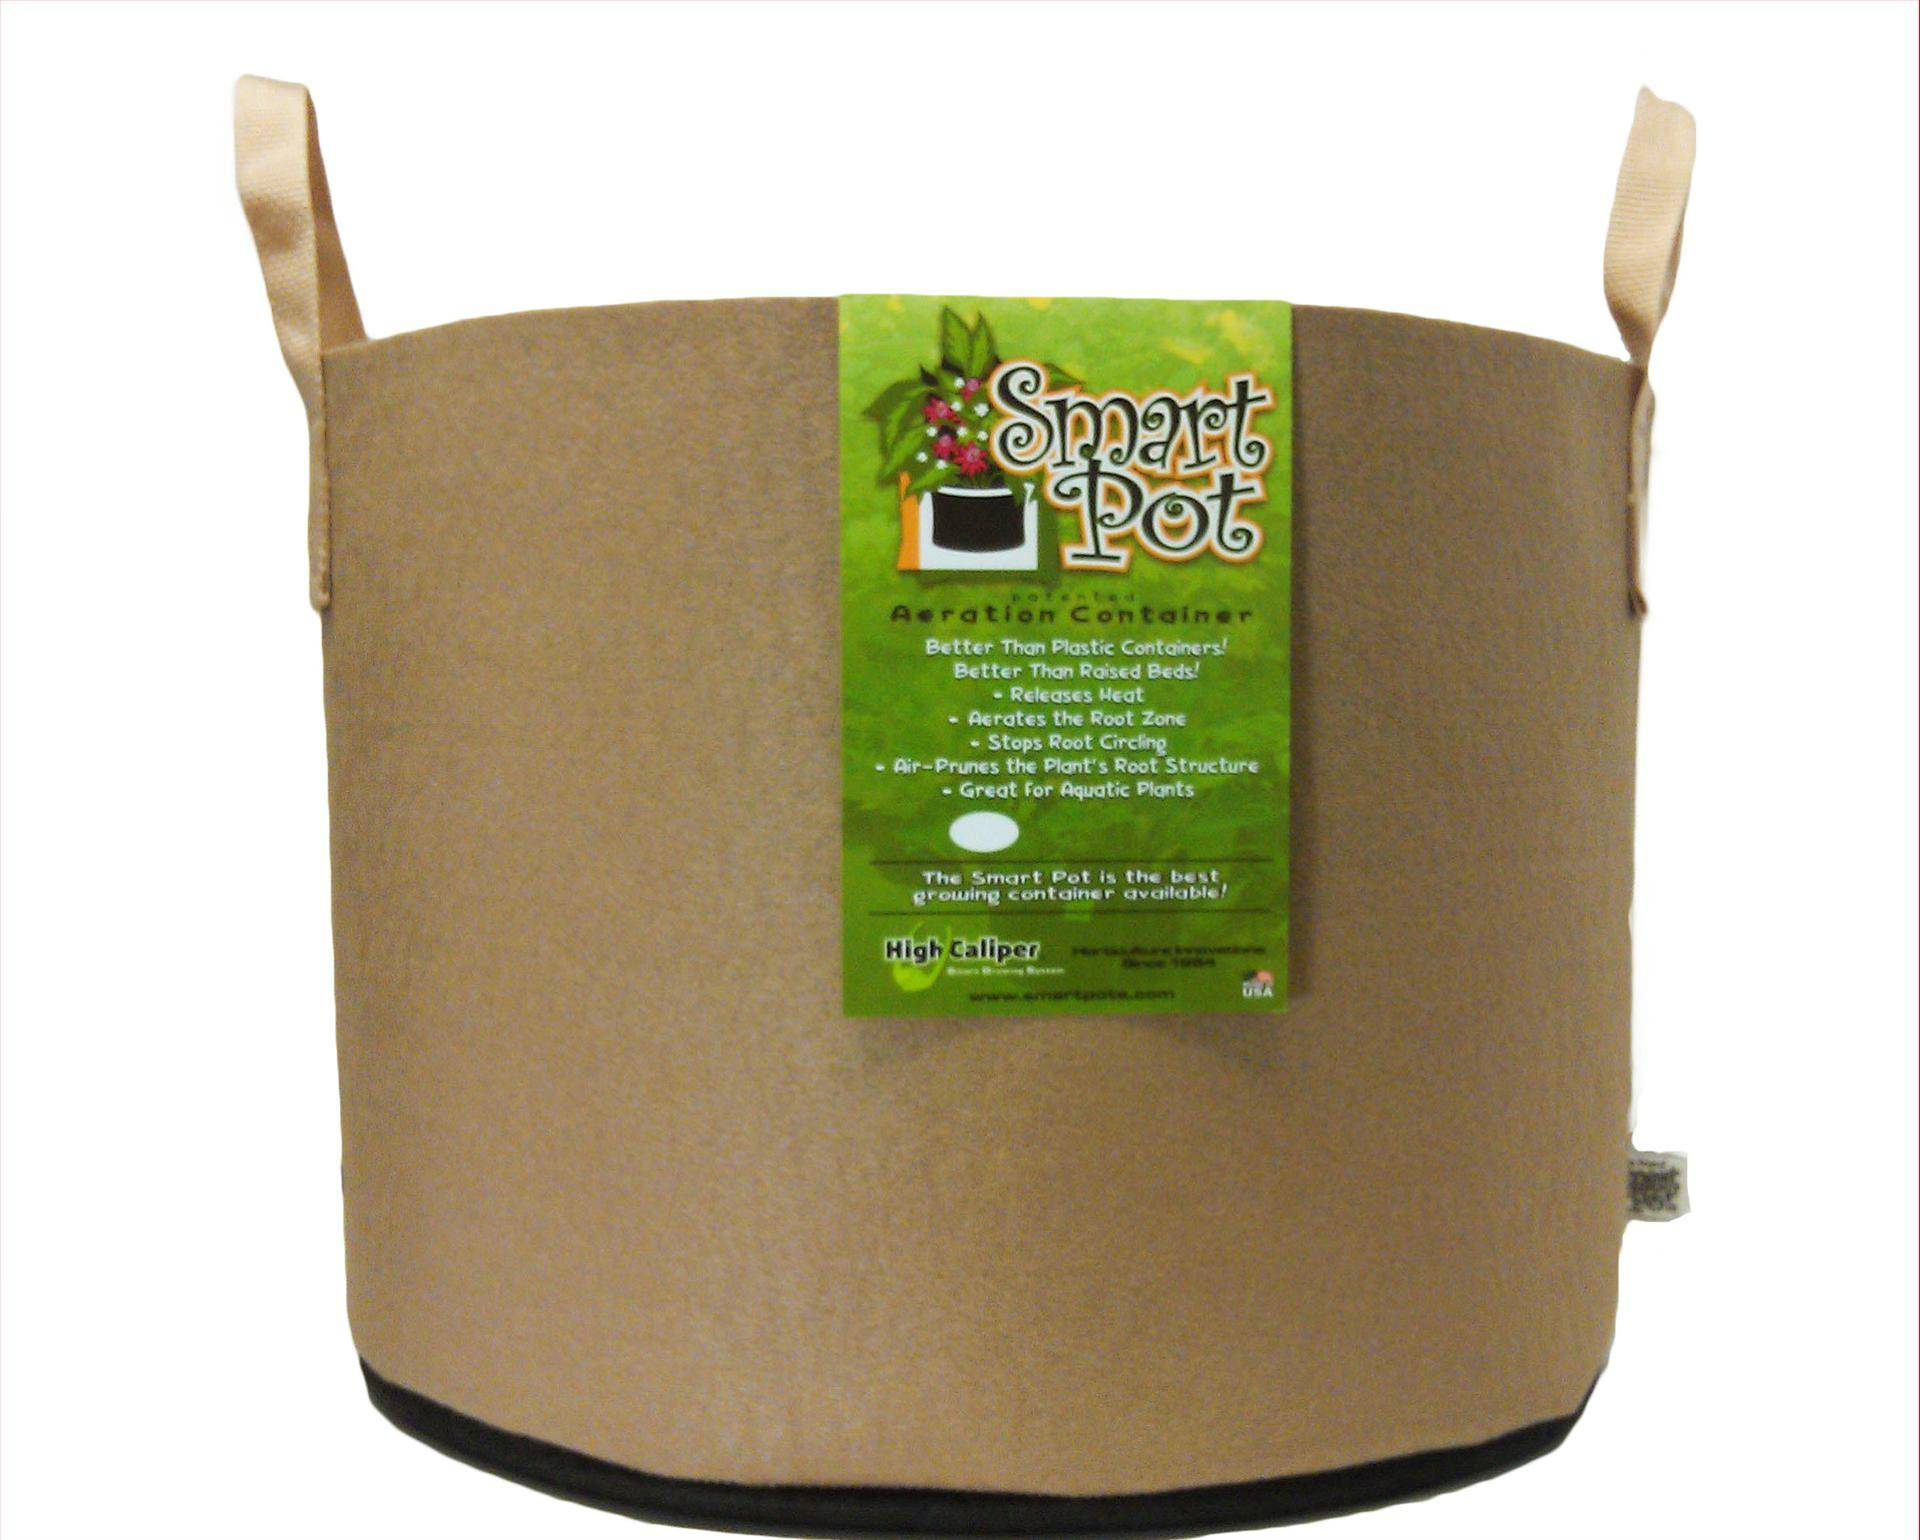 Smart Pots w/ Handle - Tan - Commercial Bulk Cases Commercial Bulk Case Quantities! This product has been tested and is verified BPA Free and Lead Free. These soft growing containers allow more air to reach the growing medium and roots, improving drainage and keeping the root system from overheating on hot days. Plant roots also benefit from their natural tendency to grow into soft surfaces like the Smart Pot, becoming thick and healthy instead of circling the inside of the pot and becoming root-bound. These pots are aeration containers allowing the air to prune the plant root structure. Simply remove the containers before transplanting. These pots will help plants become established more quickly after transplanting. Why Are Smart Pots Better For Growing? Choosing the best pot for your plants is one of the most important components for successful container gardening. For more then twenty-five years the  Smart Pot  has consistently out performed all other growing containers in both commercial nurseries and university testing. The patented Smart Pot is a soft-sided, aeration container, uniquely designed to improve the root structure of your plants enabling them to grow to their full potential. Smart Pots are better than plastic containers Hard-sided plastic containers are relatively inexpensive but they are not a very good home for a plant's root structure. Plastic allows no aeration, conducts and holds heat, and provides inadequate or poor drainage. Even on mildly sunny days, container soil temperatures can easily top 120 degrees, damaging or killing the roots and stressing the plant. The #1 killer of potted or container grown plants is over watering and plastic containers with a few bottom drainage holes actually help the soil stay too wet. A Smart Pot is constructed of a porous fabric that allows heat to dissipate and excess water to evaporate. In fact, over-watering is never a problem because excess water drains and evaporates from all of the Smart Pot's surfaces; its walls as well as its bottom. Because the Smart